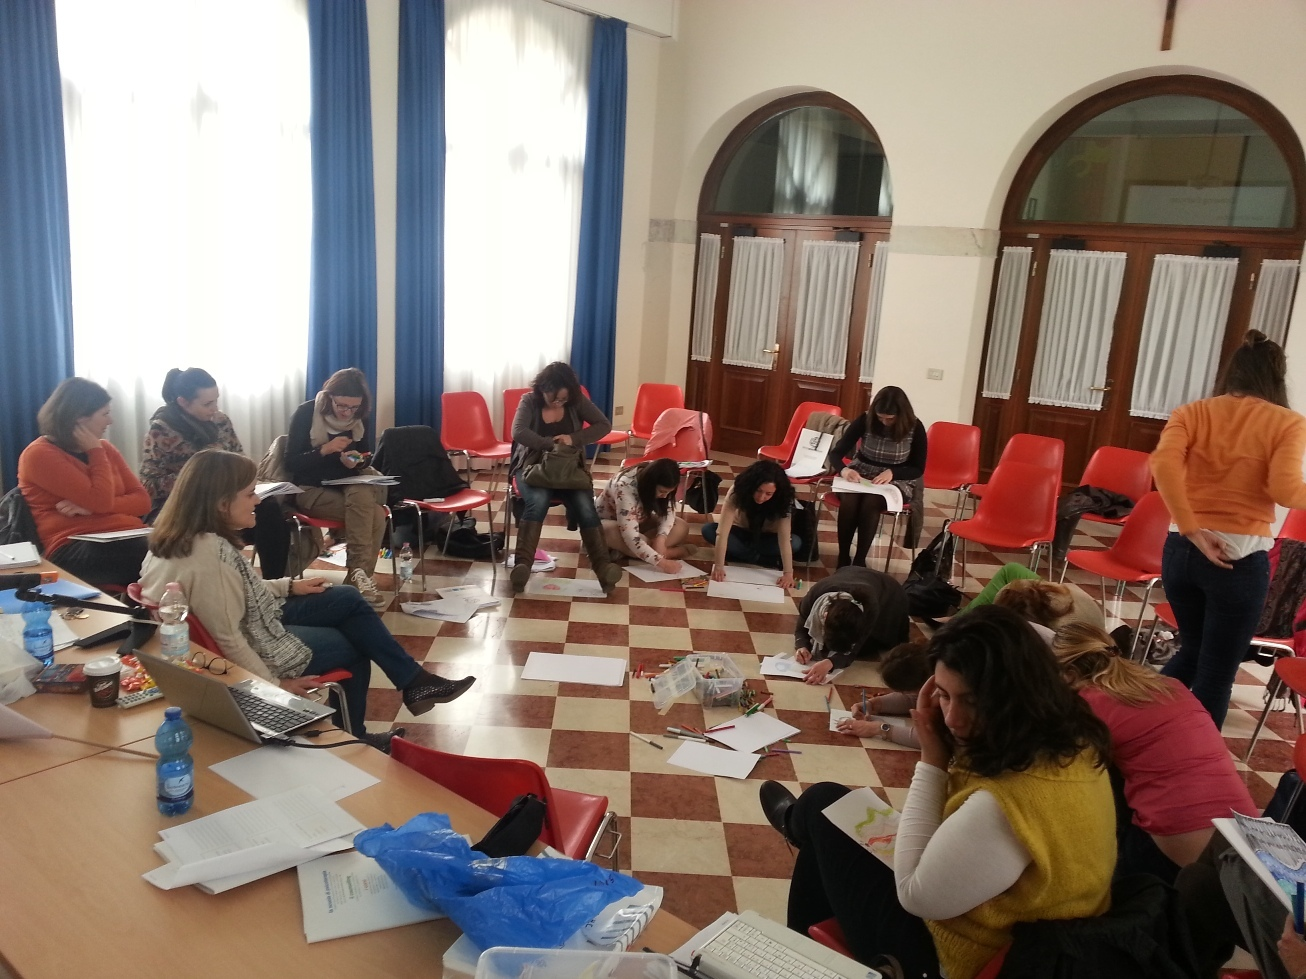 gestalt play therapy venezia 13 14 training karen hillmann fried giandomenico bagatin psicologia psicoterapia bambini 4